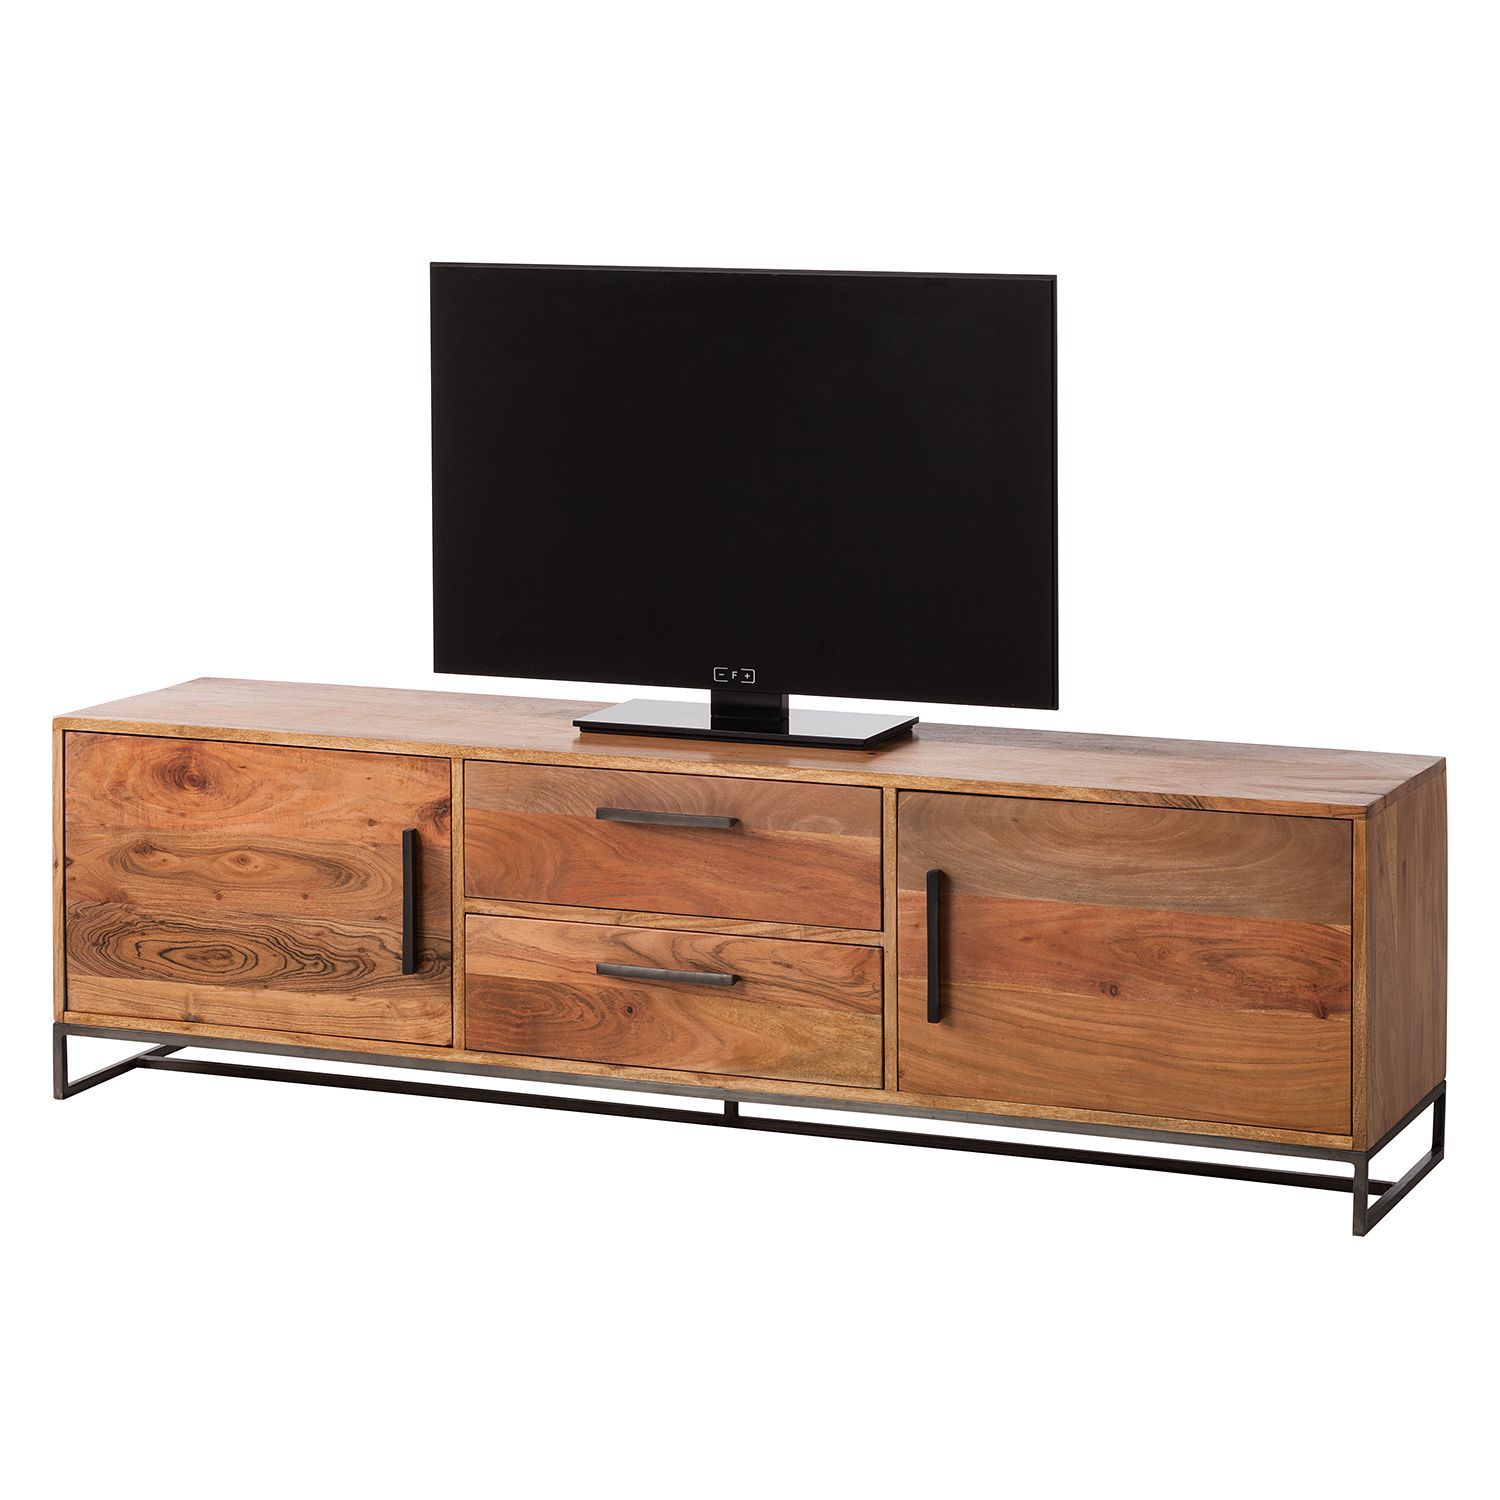 Eck Lowboard Pin By Ladendirekt On Tv Hifi Möbel Cabinet Furniture Sideboard